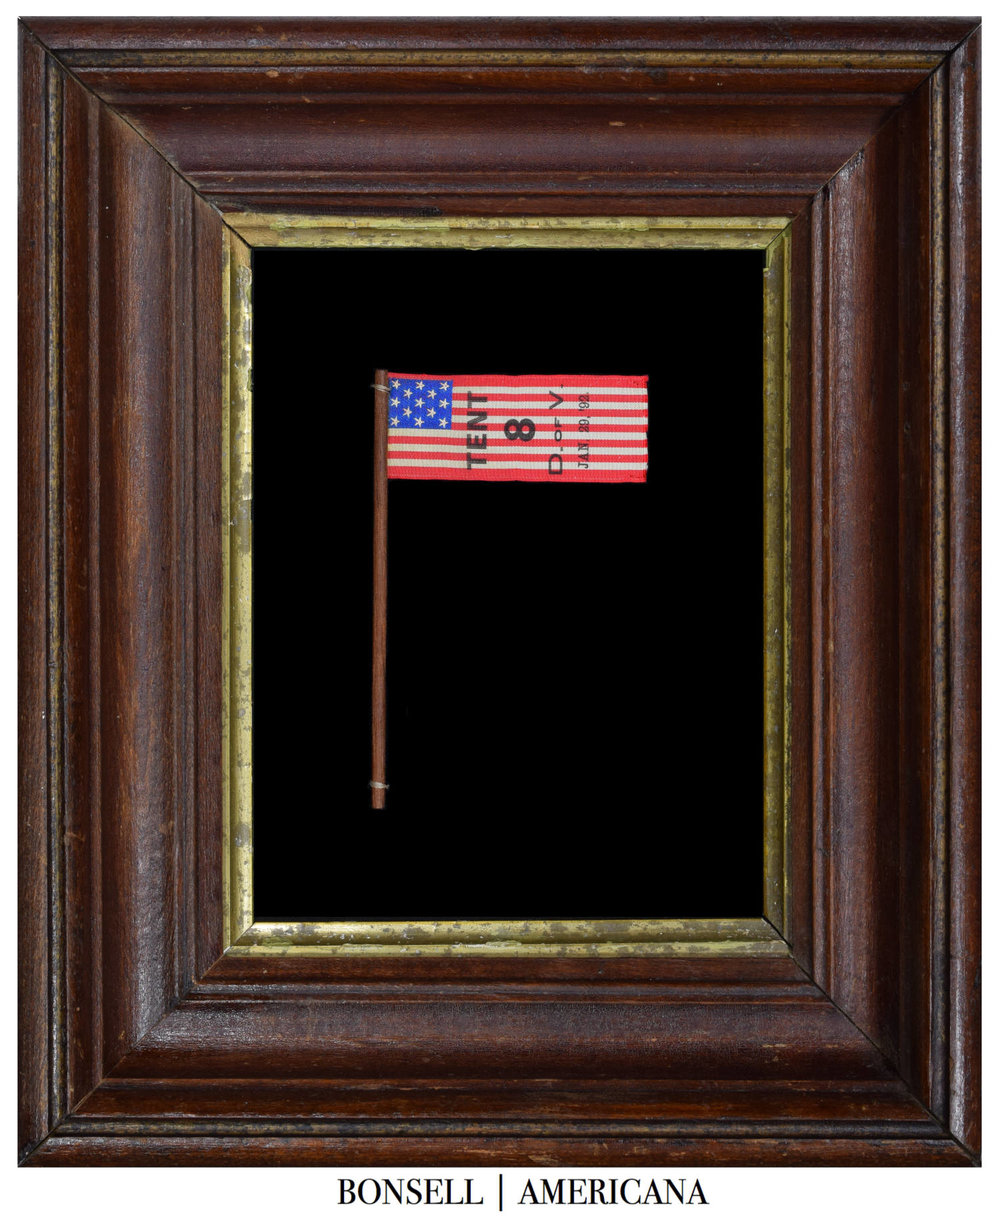 13 Star Daughters of Union Veterans Flag